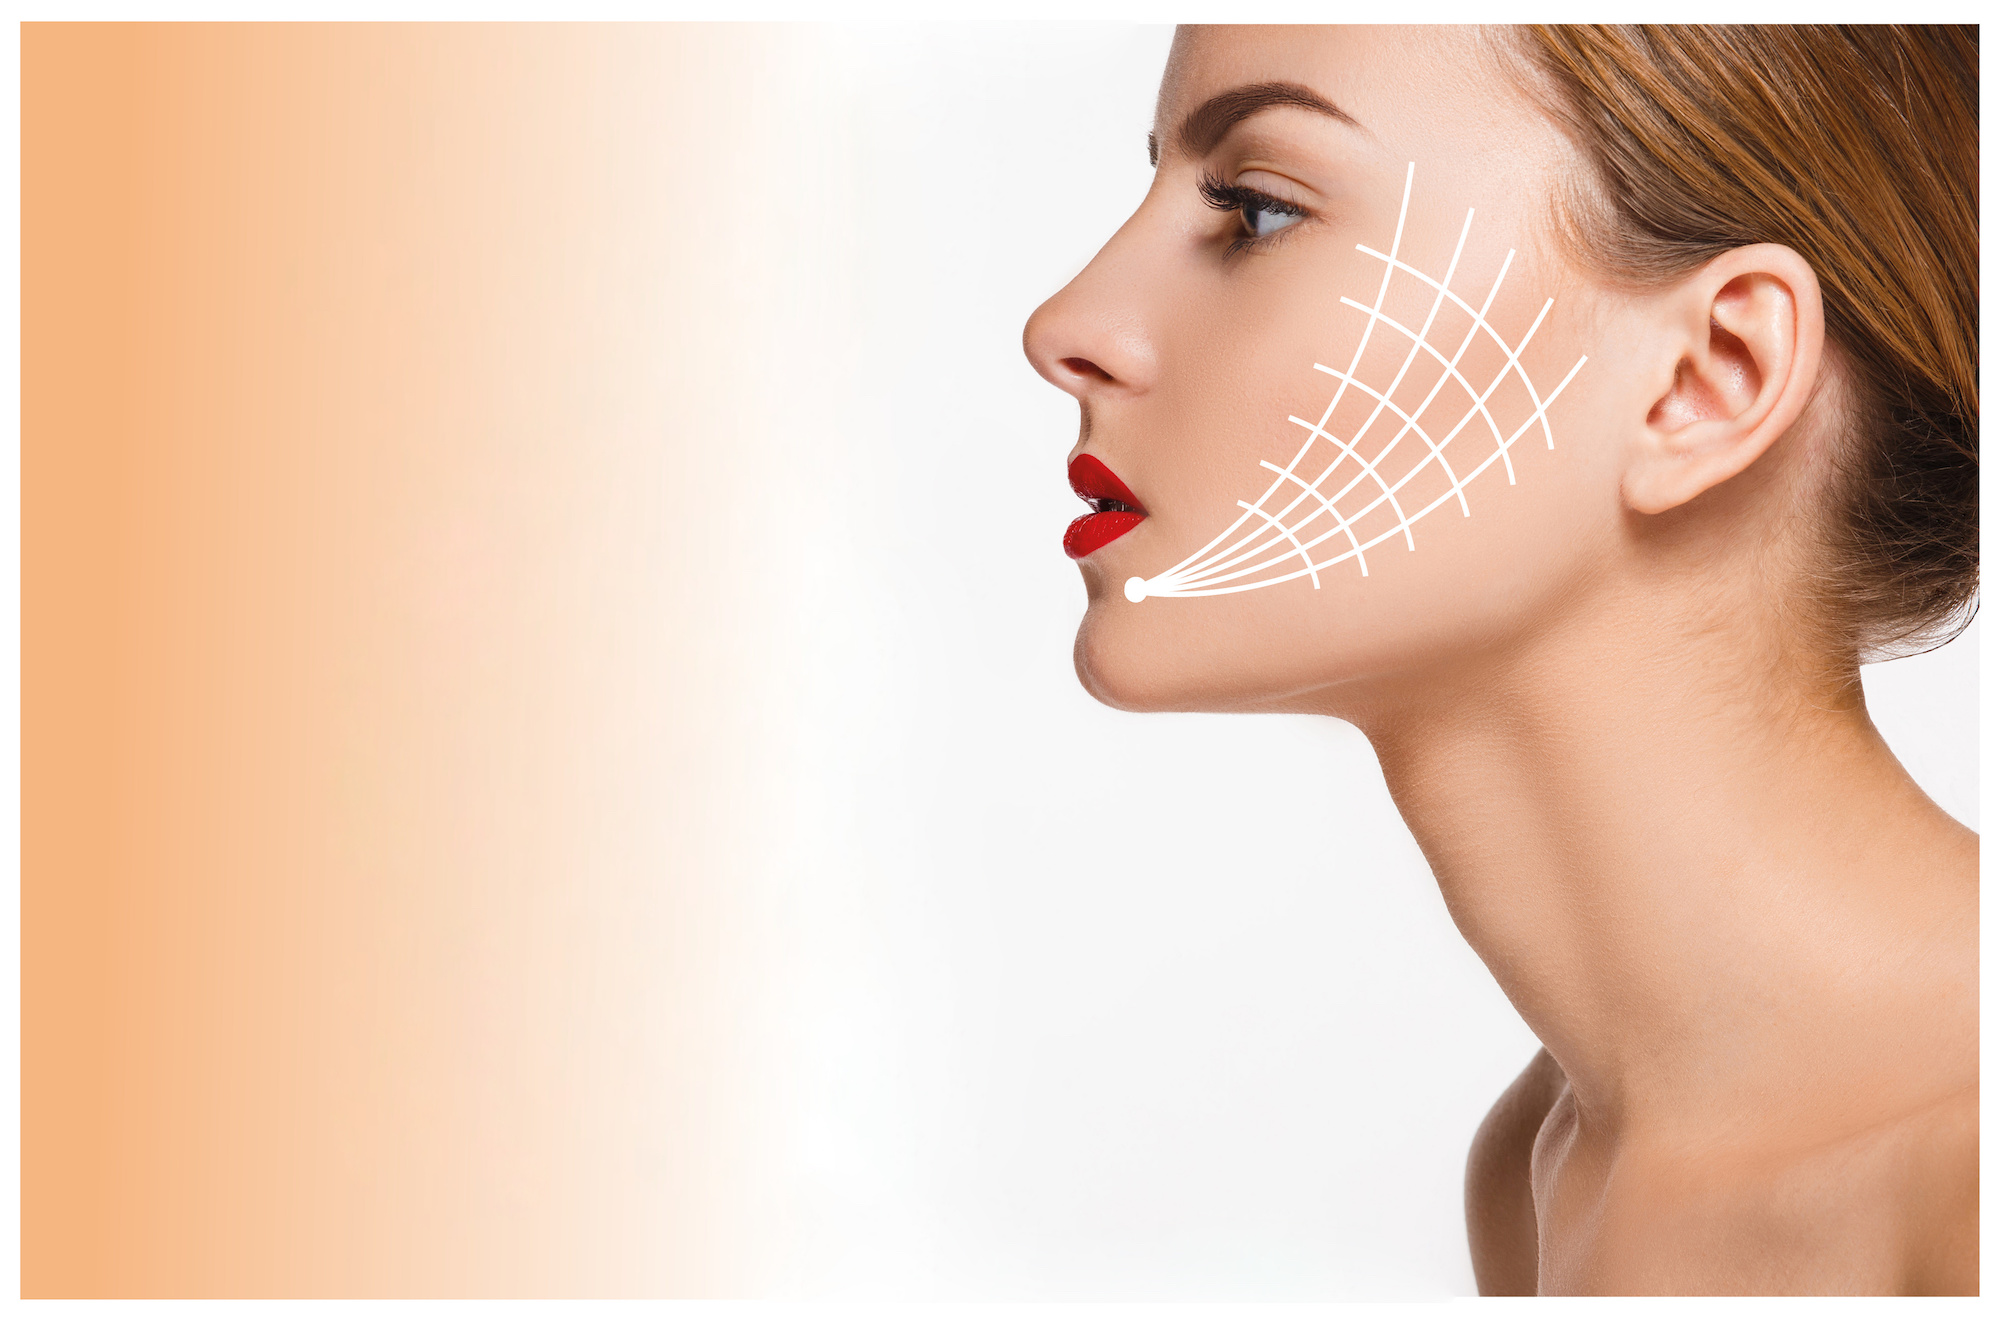 pdf smooth thread, nonsurgical facelift, facelift, anti-aging, look younger without surgery